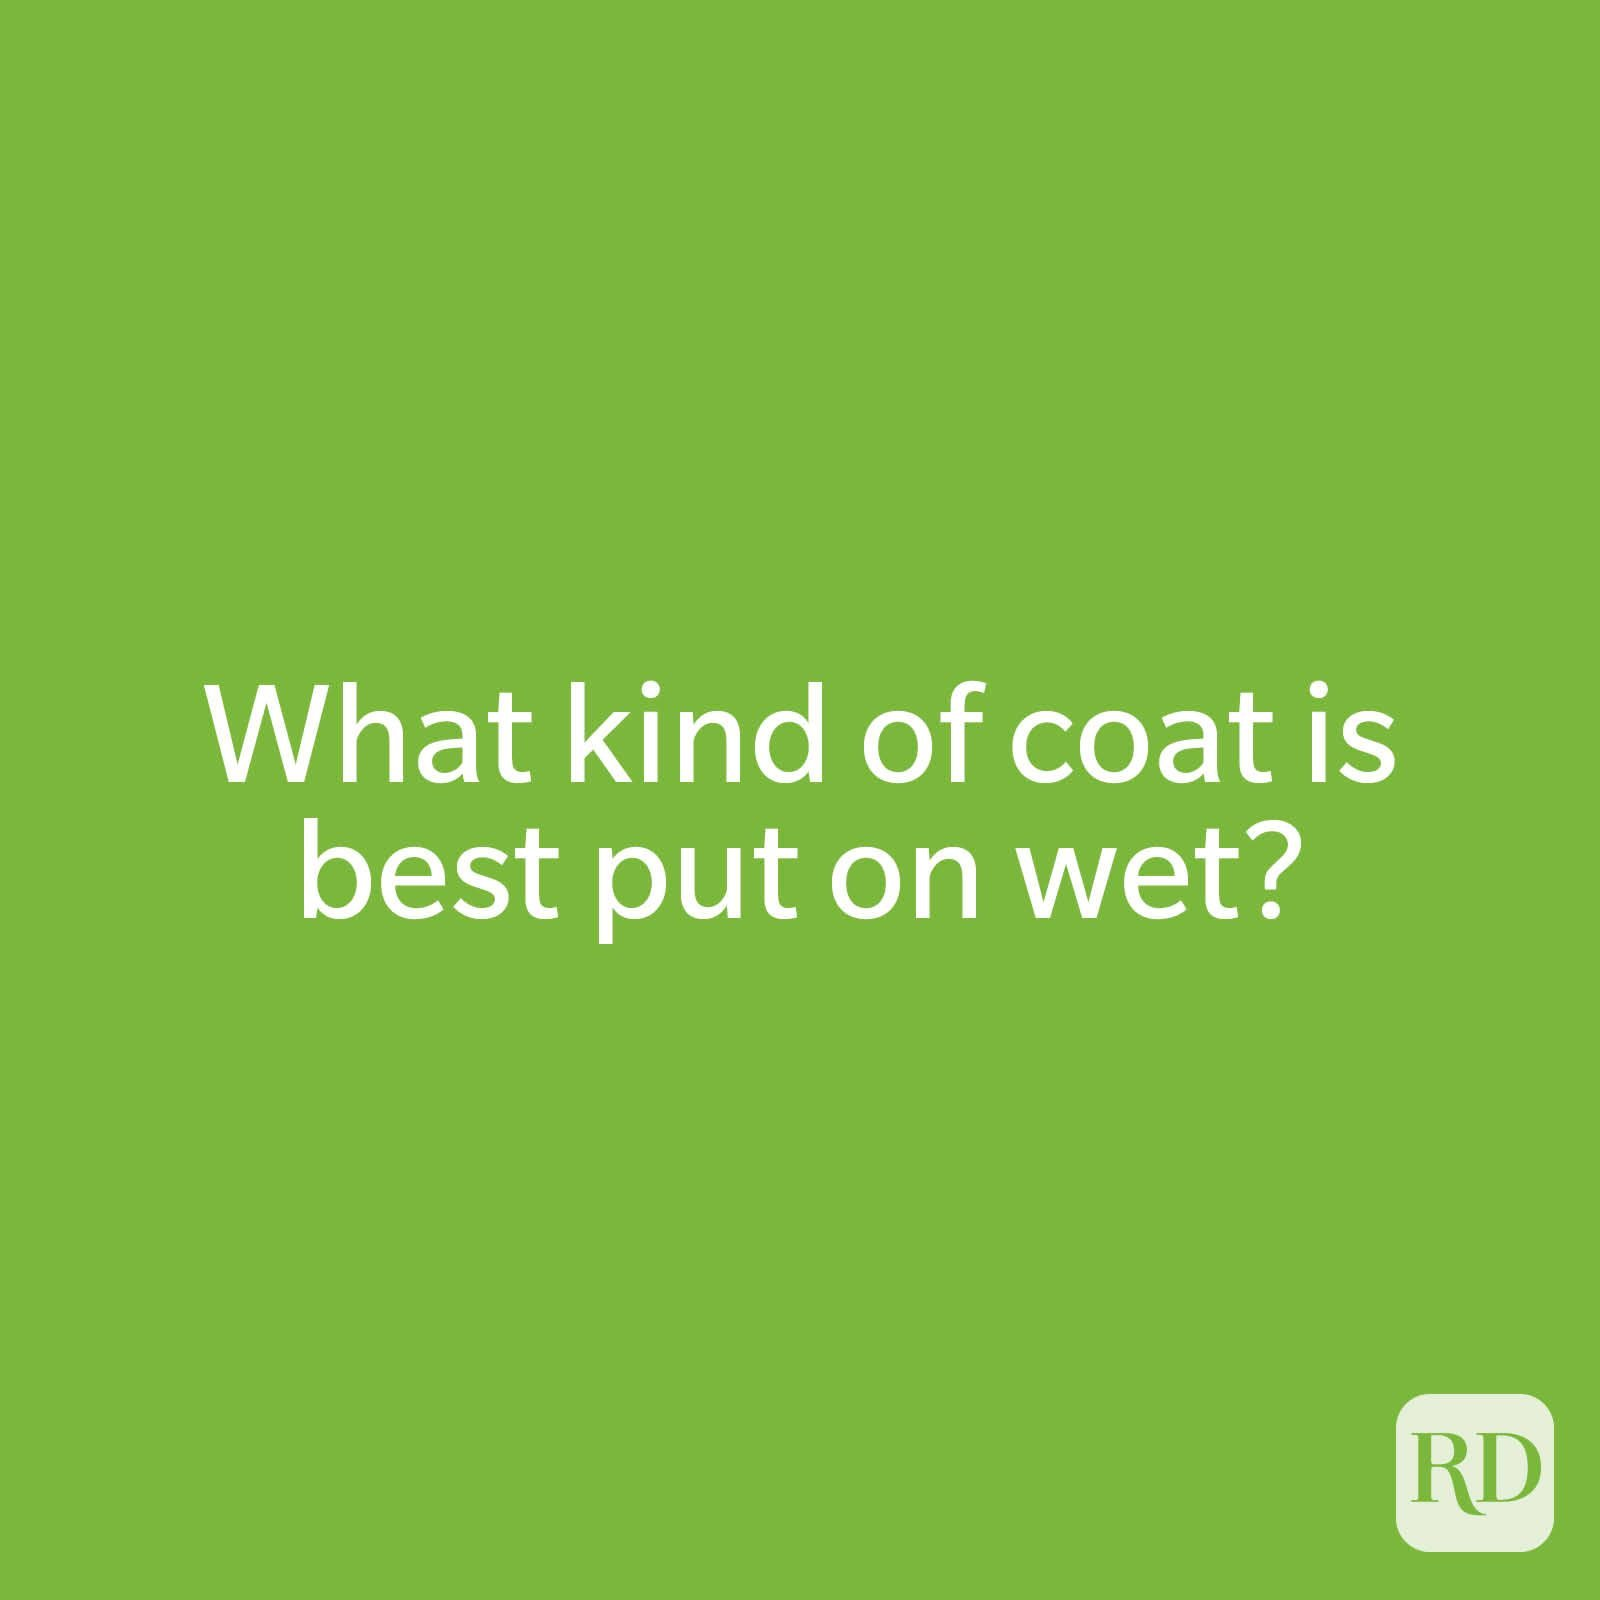 What kind of coat is best put on wet?